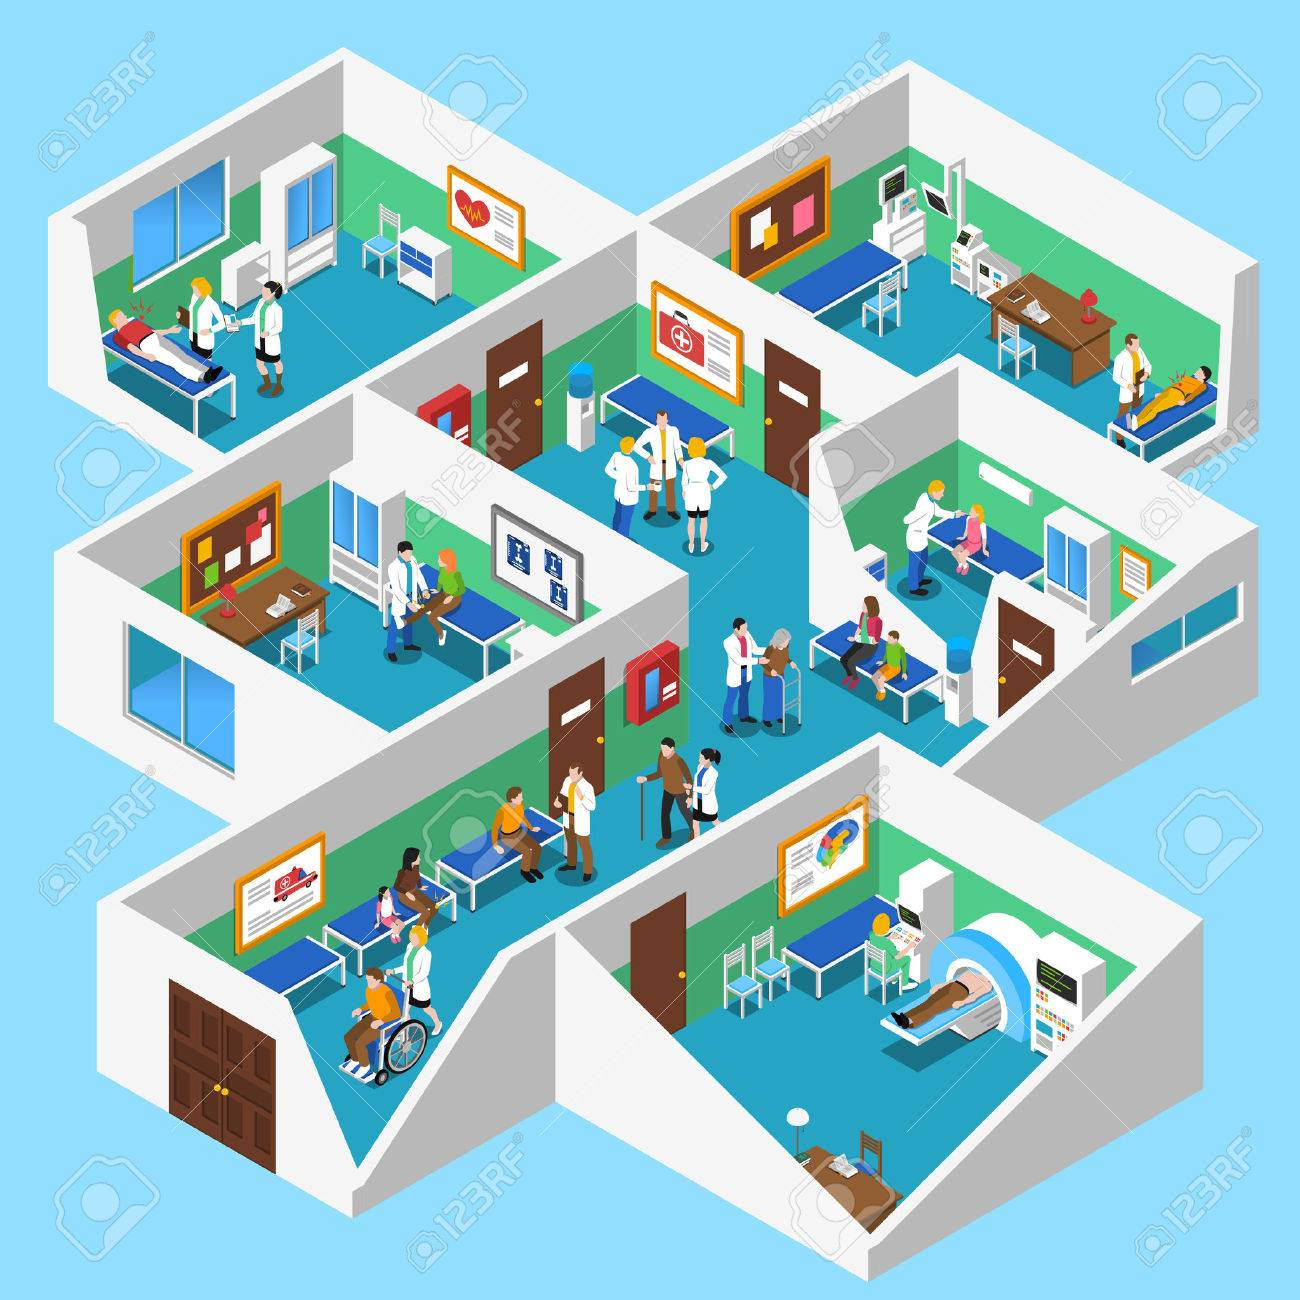 Hospital ground floor interior isometric design with mri facility patients nurses and doctor assistants abstract vector illustration - 58671017